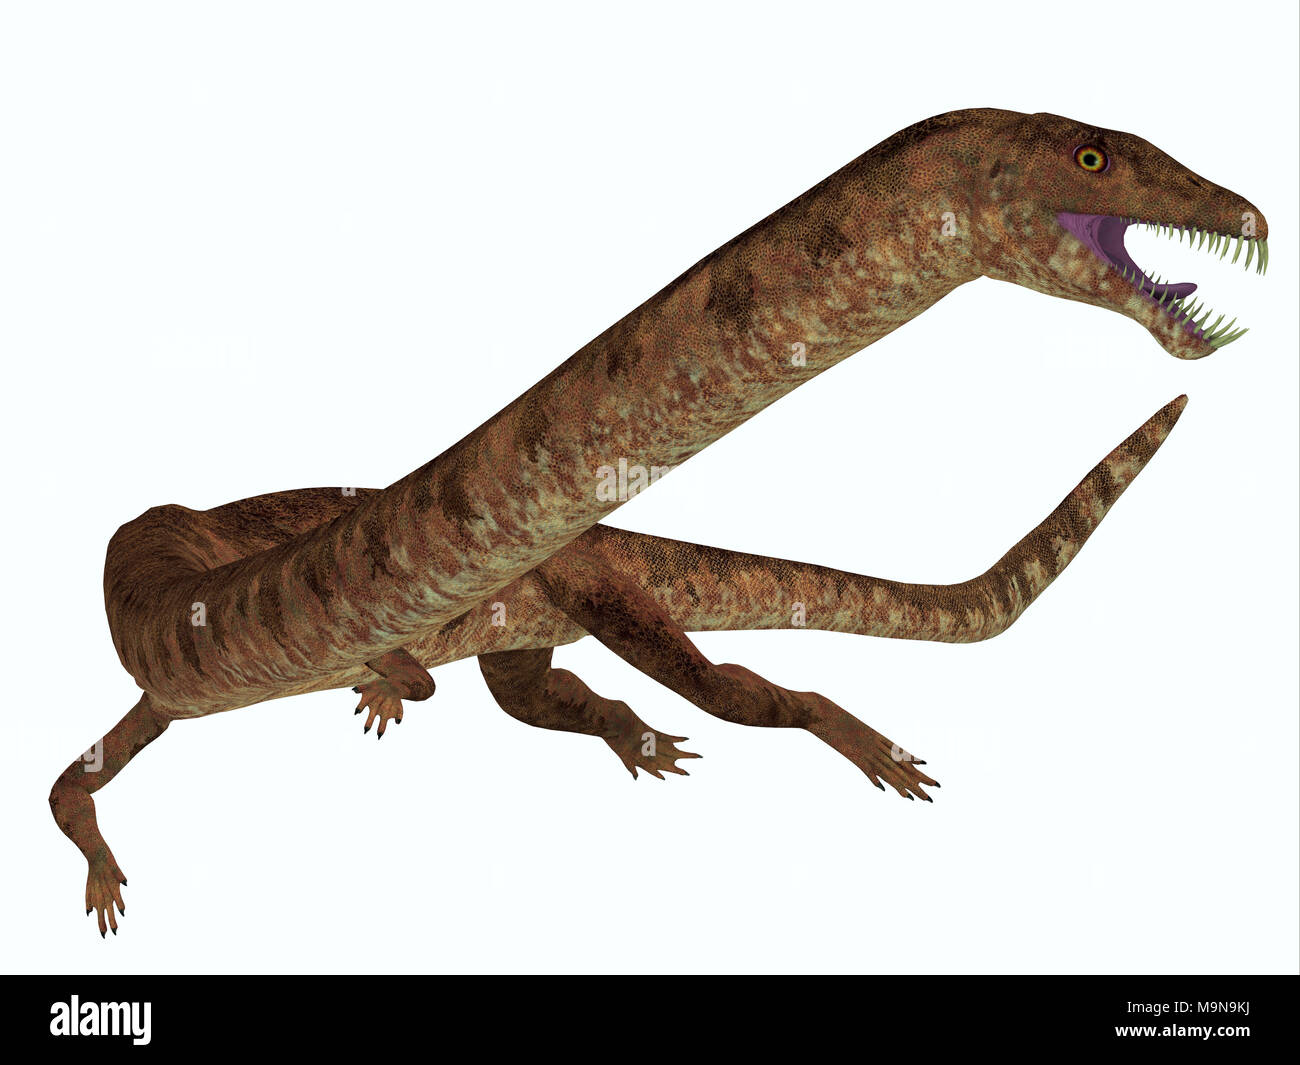 Tanystropheus Dinosaur on White - Tanystropheus was a marine predatory reptile that lived in the Triassic Seas of Europe and the Middle East. - Stock Image